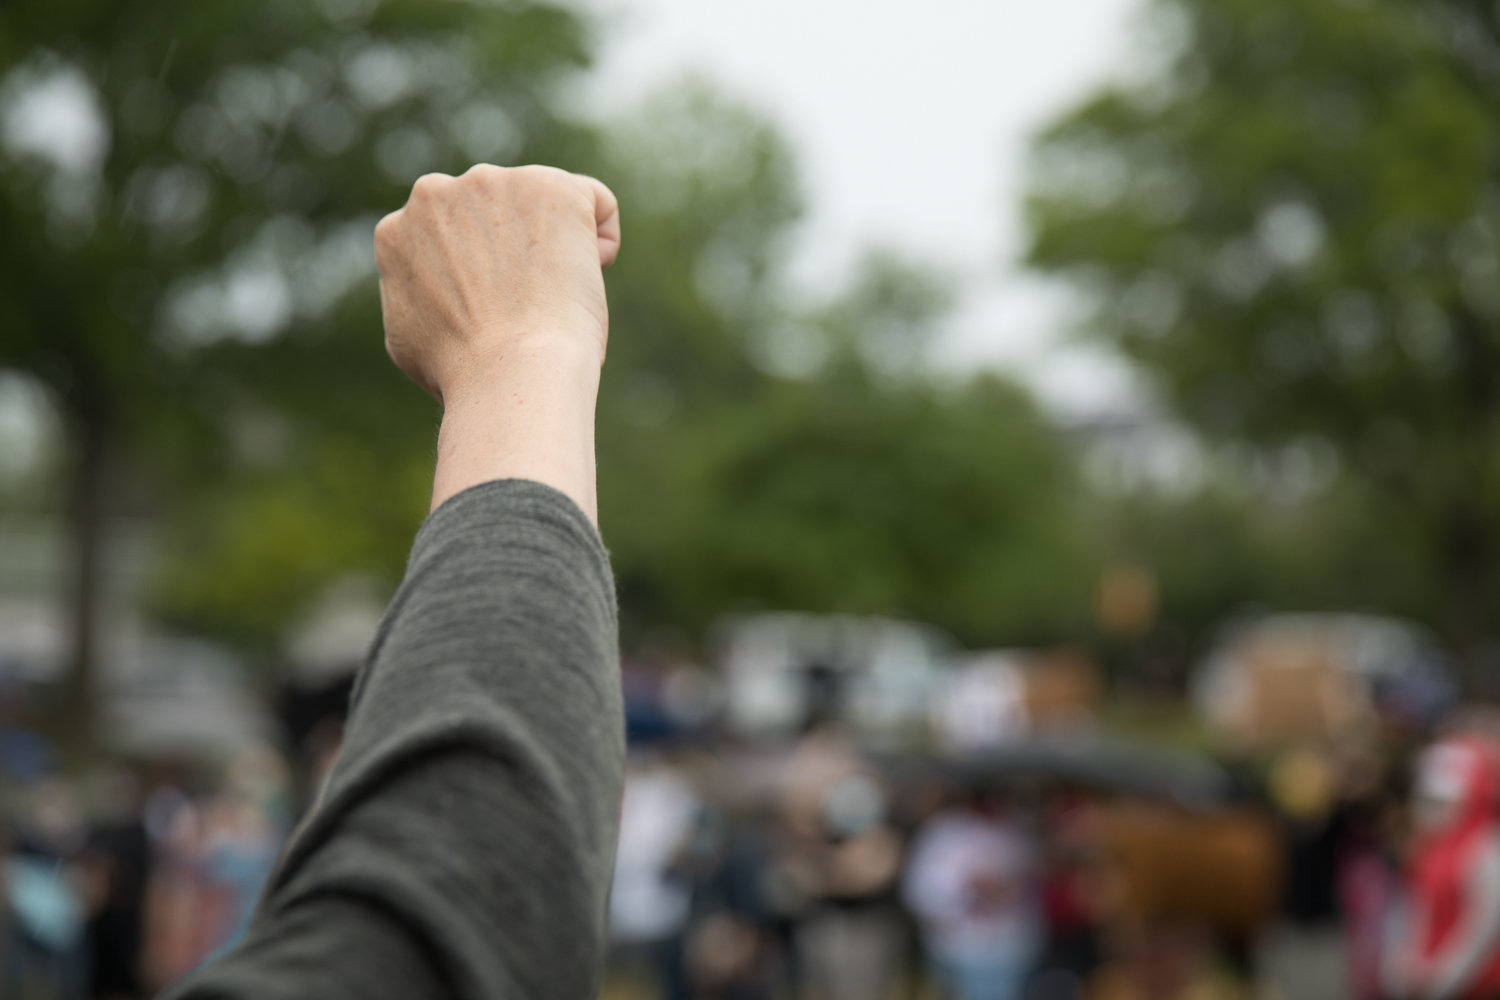 A community member raises her fist at a vigil in Seton Park honoring the lives of African Americans who died as a result of police brutality. The peaceful gathering was organized following rumors of a violent protest planned for the park that turned out to be untrue.